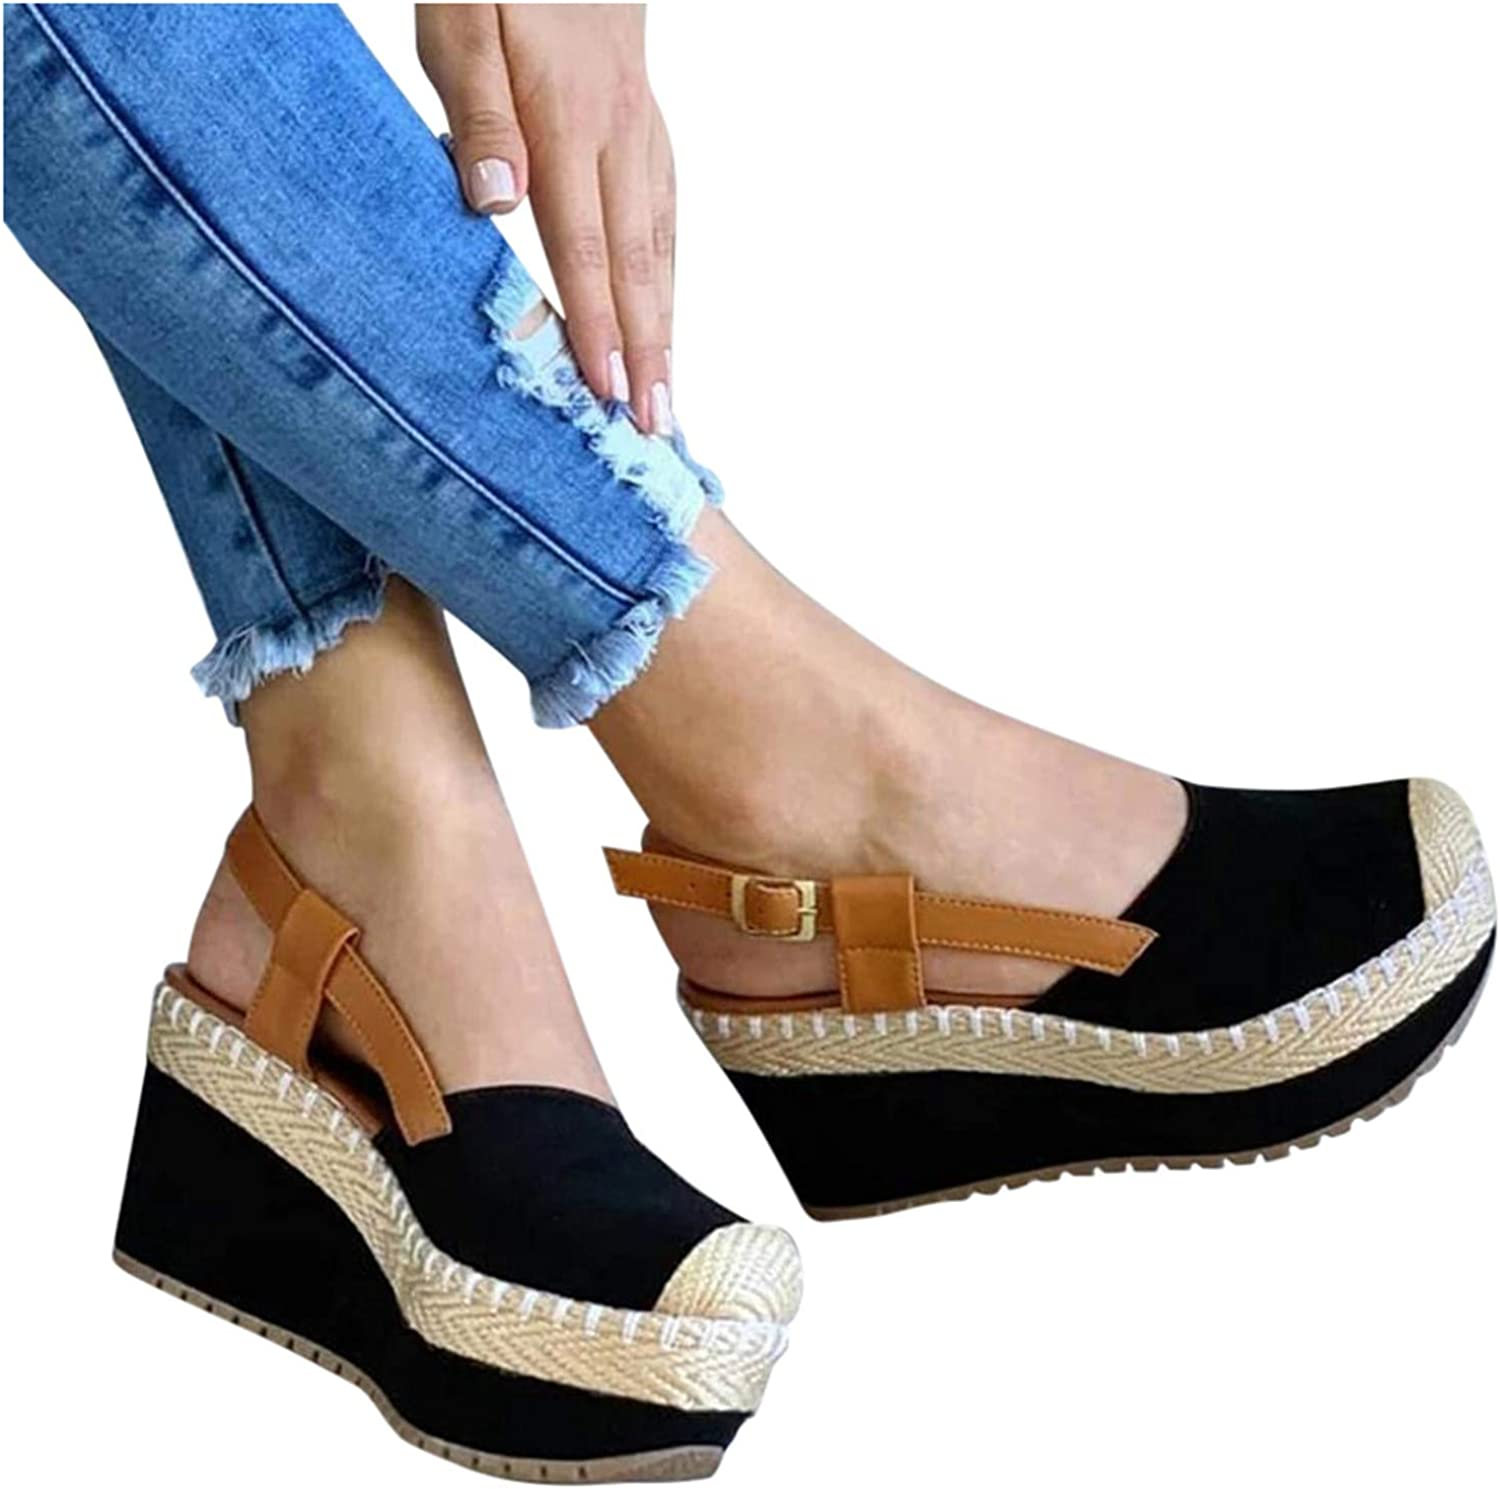 UMIYI Women's Sandals Woven Max 62% Super popular specialty store OFF Buckle Toe Wedge Covered Strap Sanda